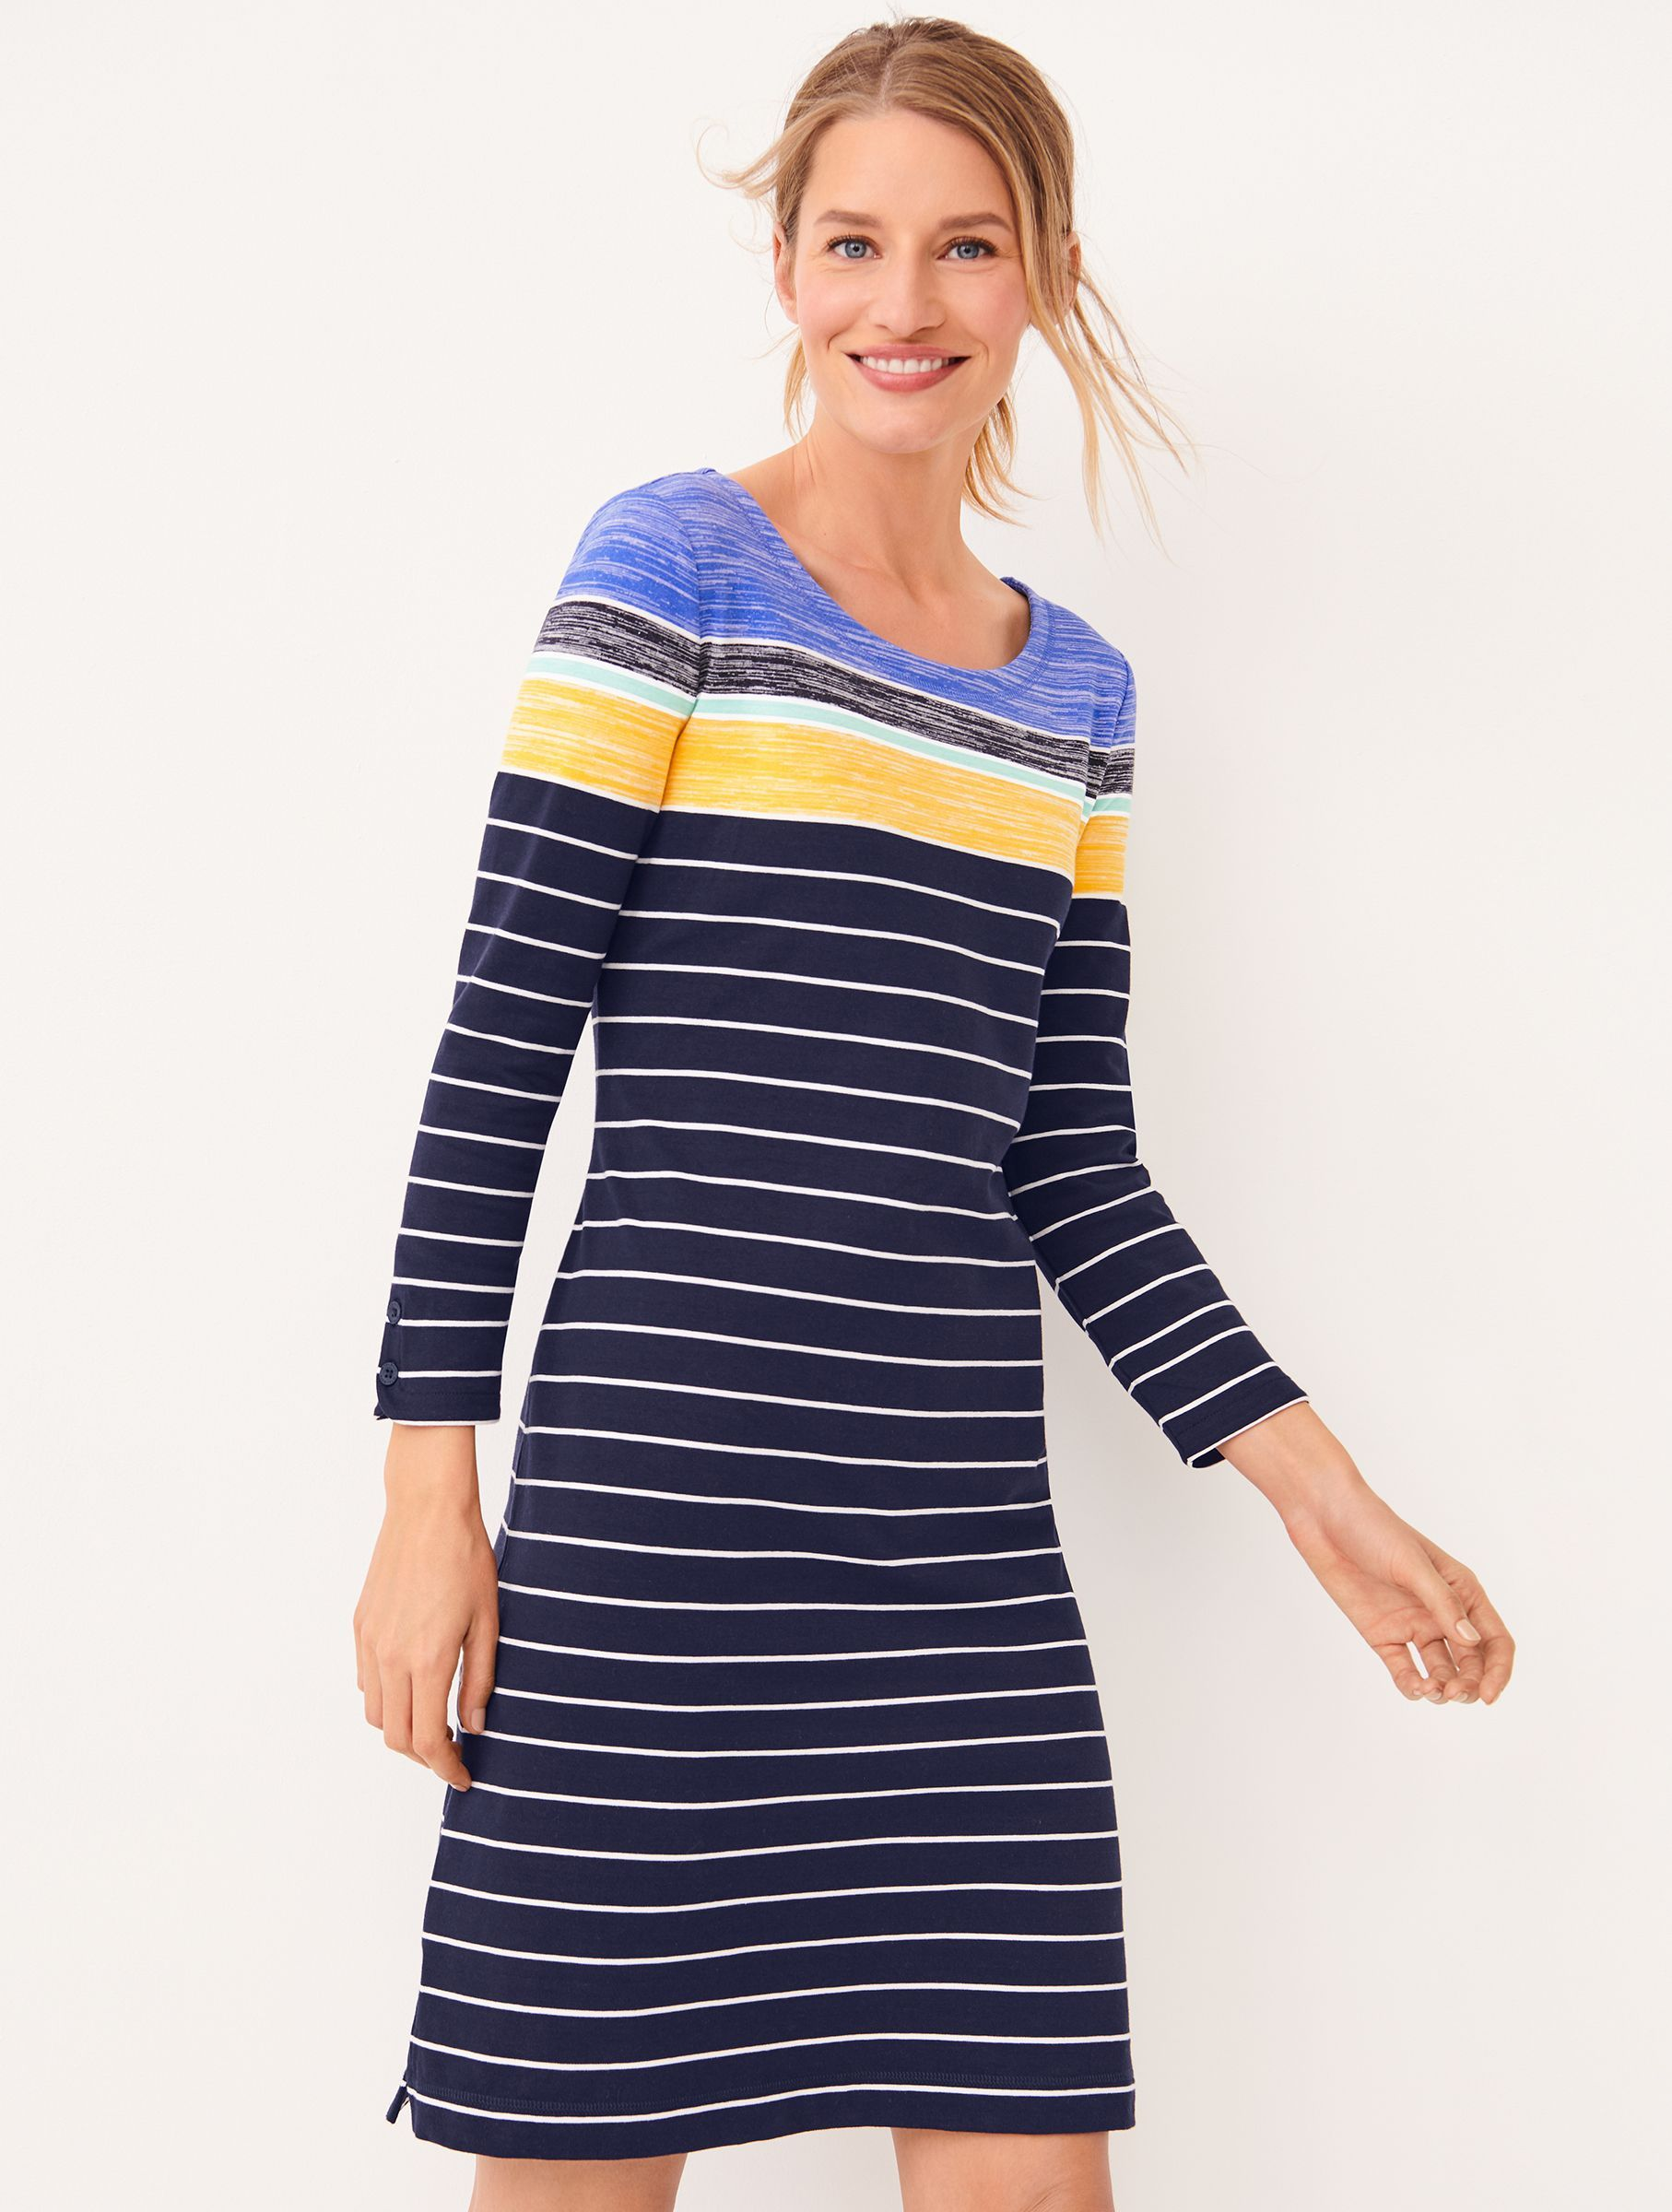 Pretty And Classic A Move With You Dress With The Right Amount Of Stretch Flattering Lines And Three Quar Striped Knit Dress Modest Summer Dresses Knit Dress [ 2400 x 1814 Pixel ]